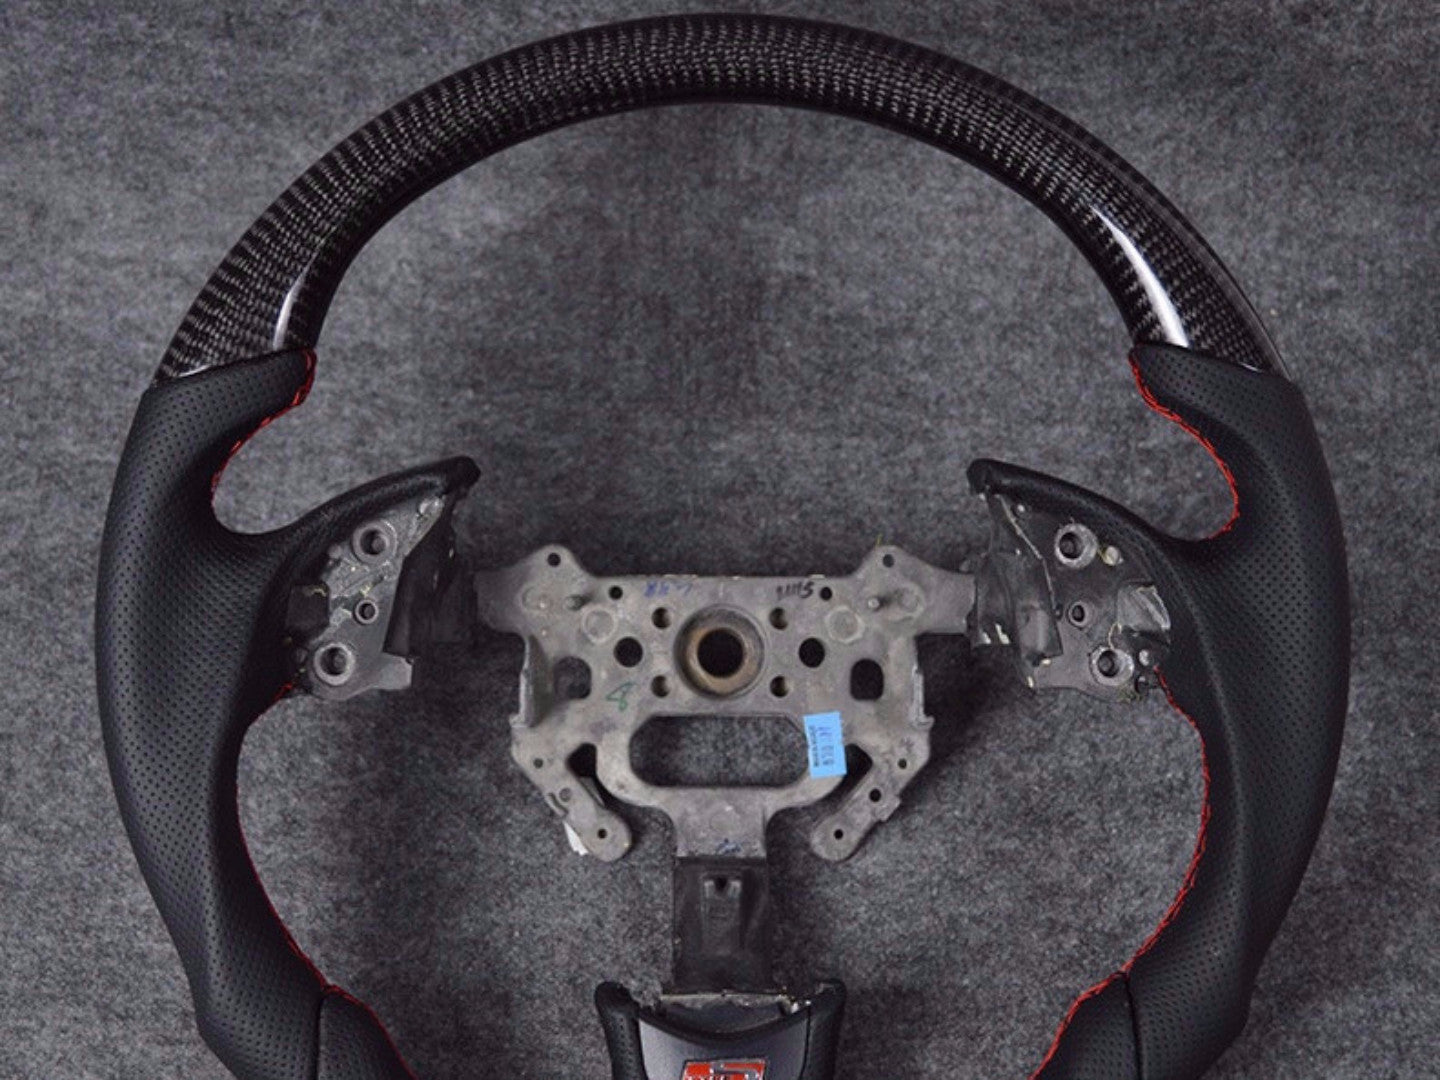 YOMATO BESPOKE STEERING WHEEL - Interior Accessories - Yomato Carbon - Montreal Canada